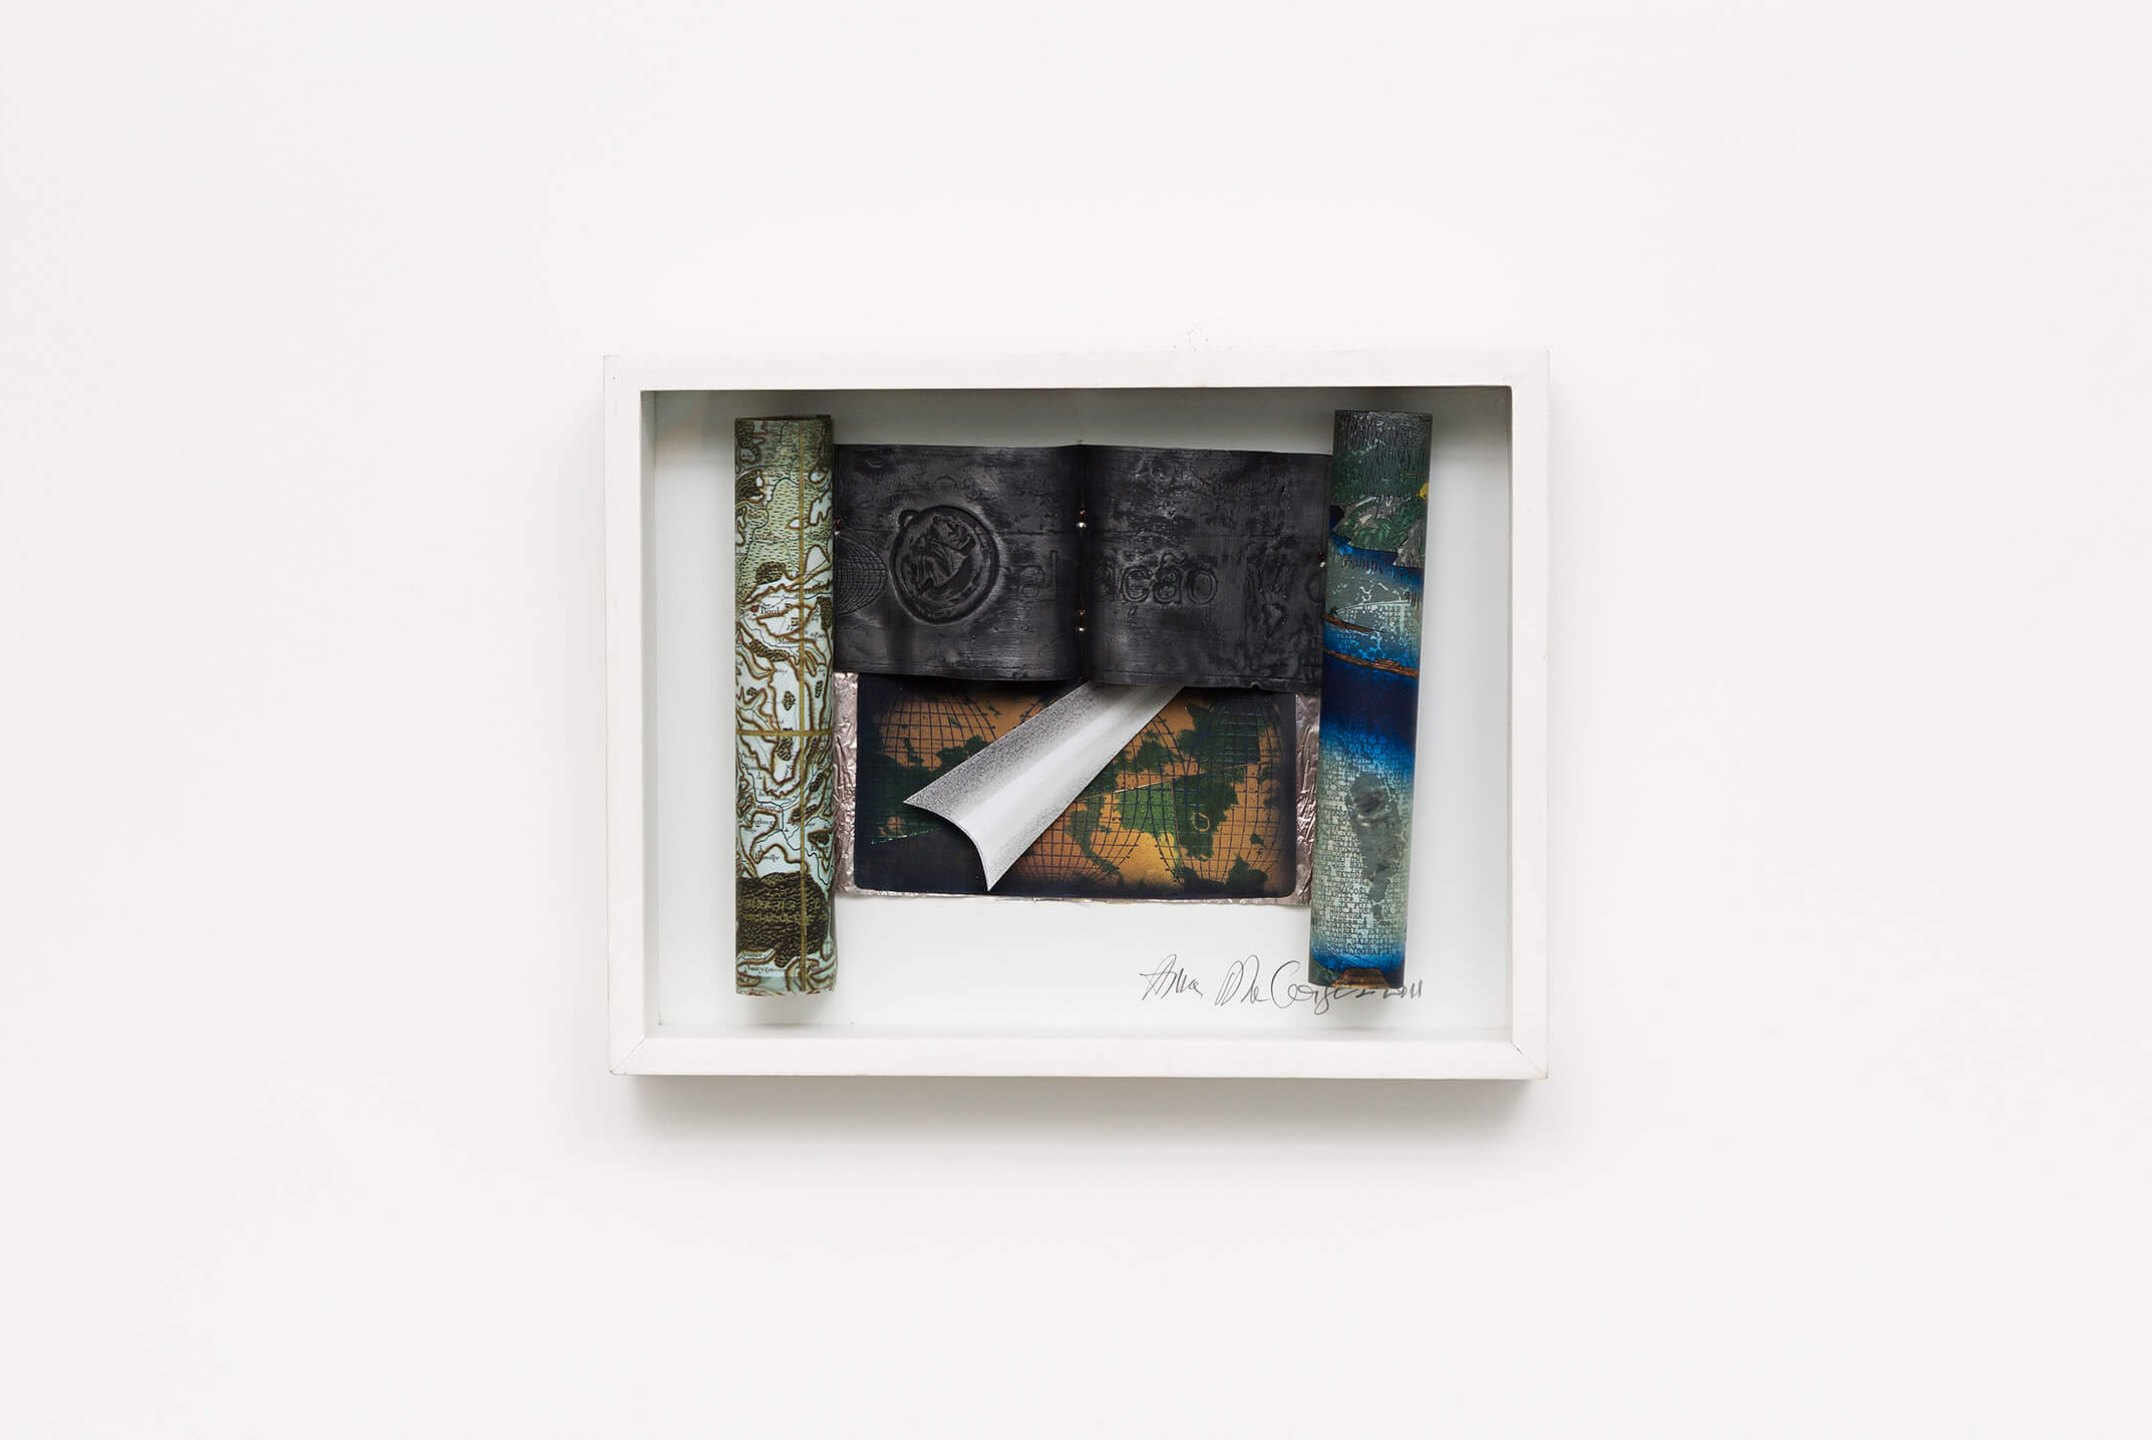 Anna Bella Geiger, <em>Rrolo-Scroll com recorte branco</em>, 2012, maps of a region of France, world map with camouflage, typewriter text on Hiroshige engraving, maps on lead sheets and metal, graphite drawing on paper, color pencil, 30 × 39 × 6 cm - Mendes Wood DM